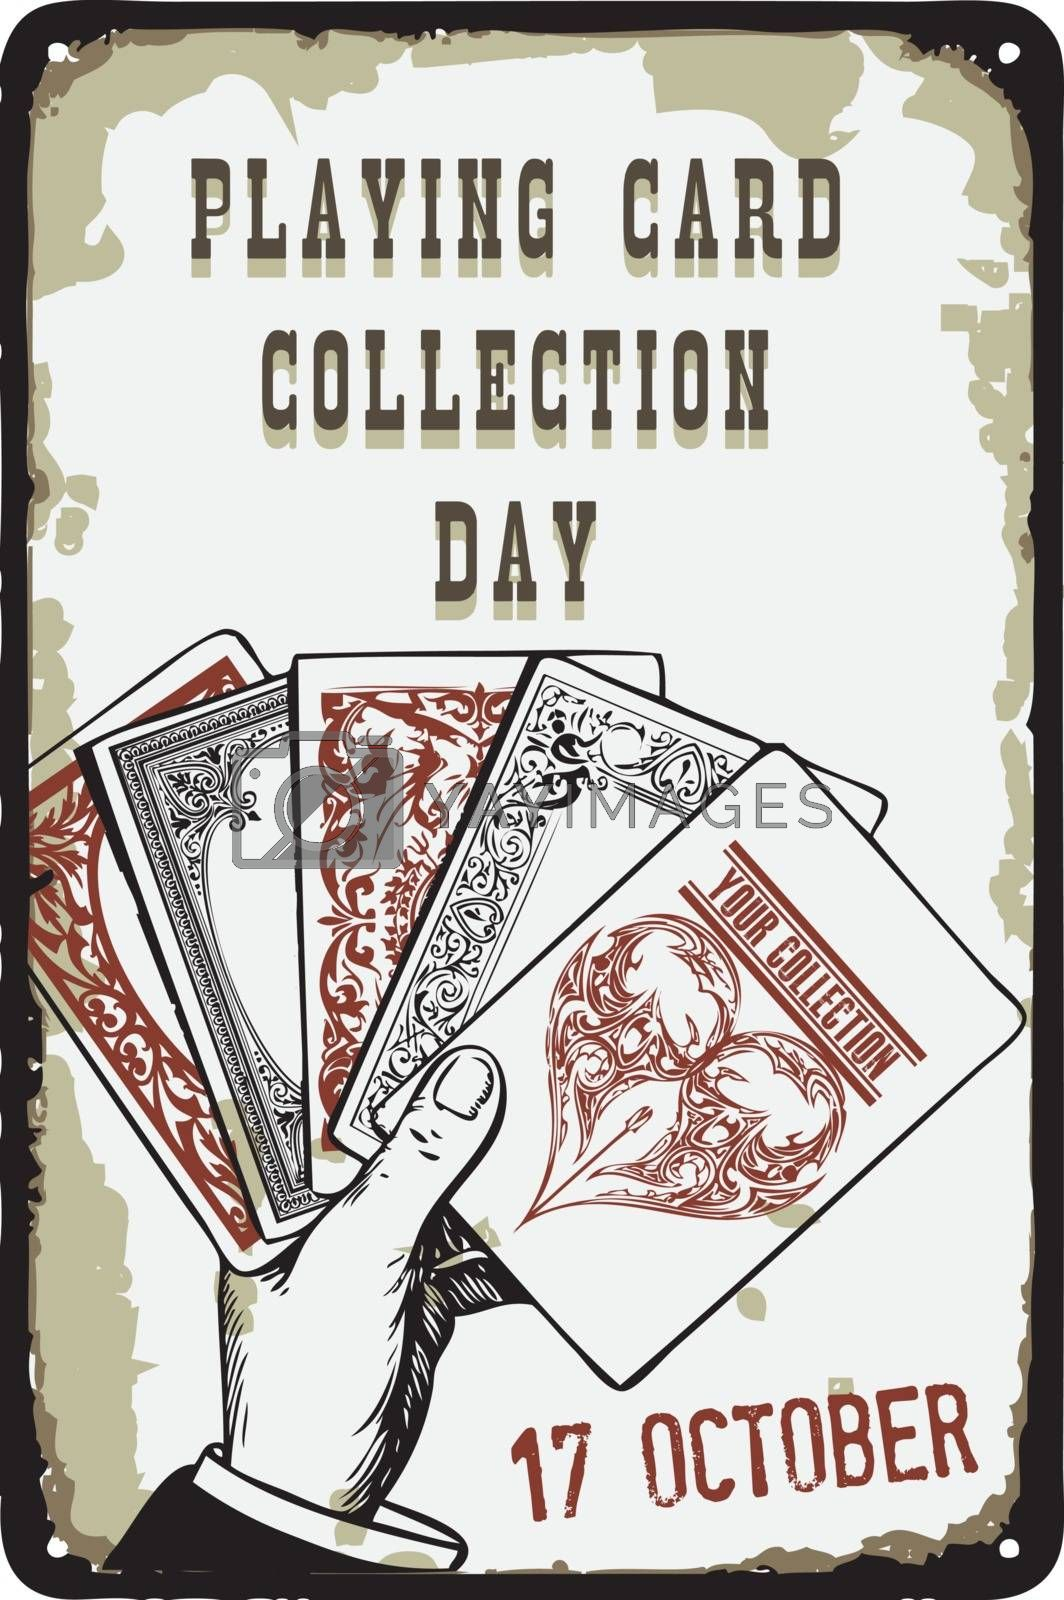 Old vintage sign to the date - Playing Card Collection Day. Vector illustration for the holiday and event in october.